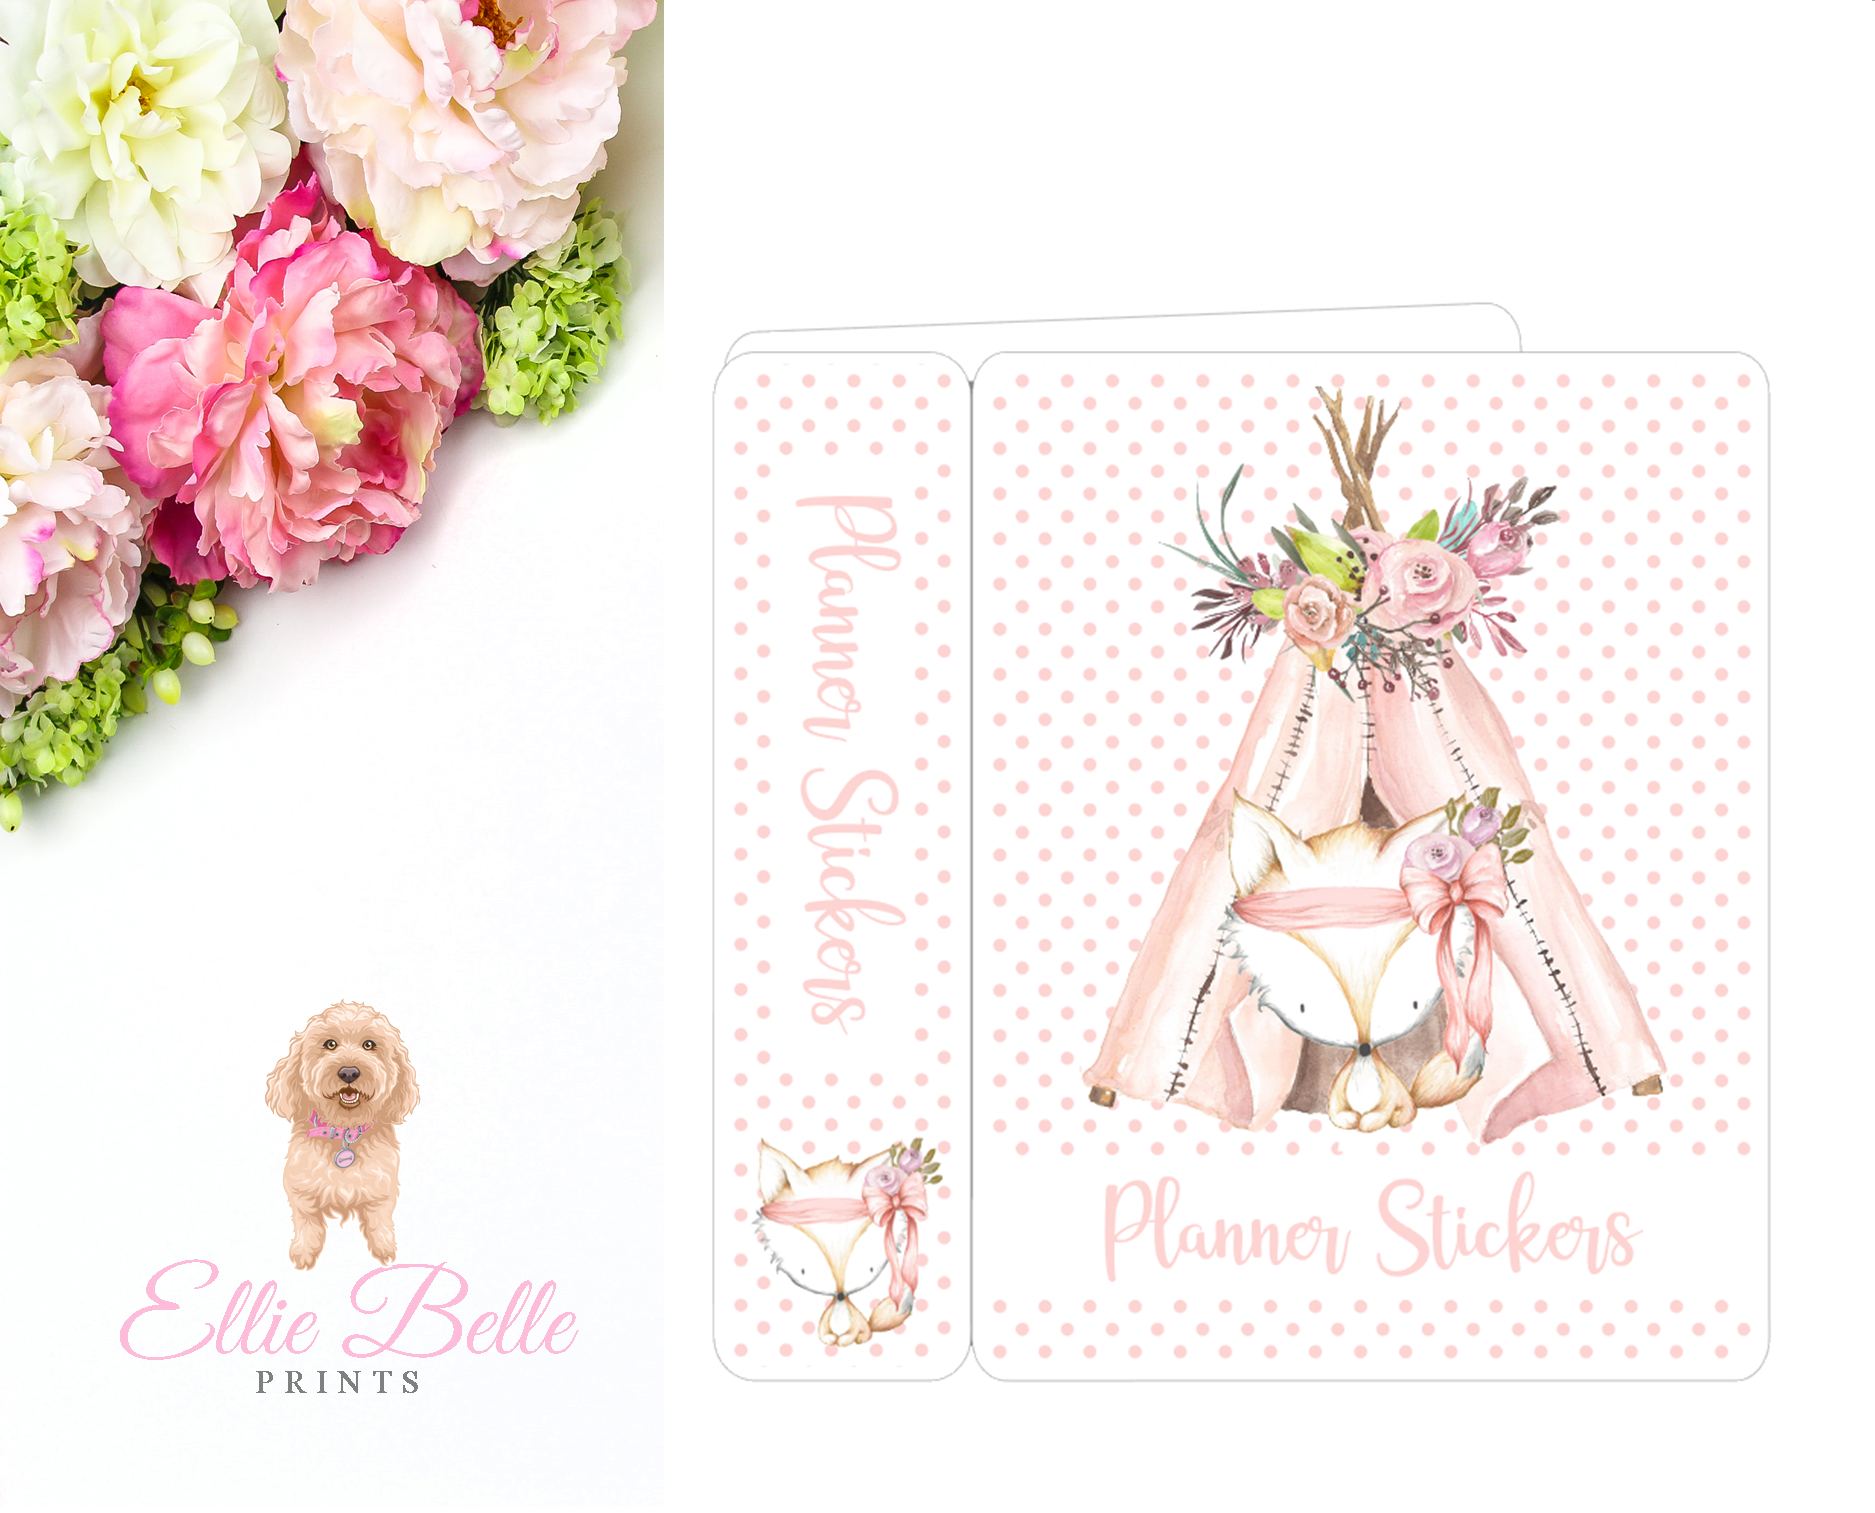 JUMBO Sticker Album (Sticker Kits) - Boho Fox